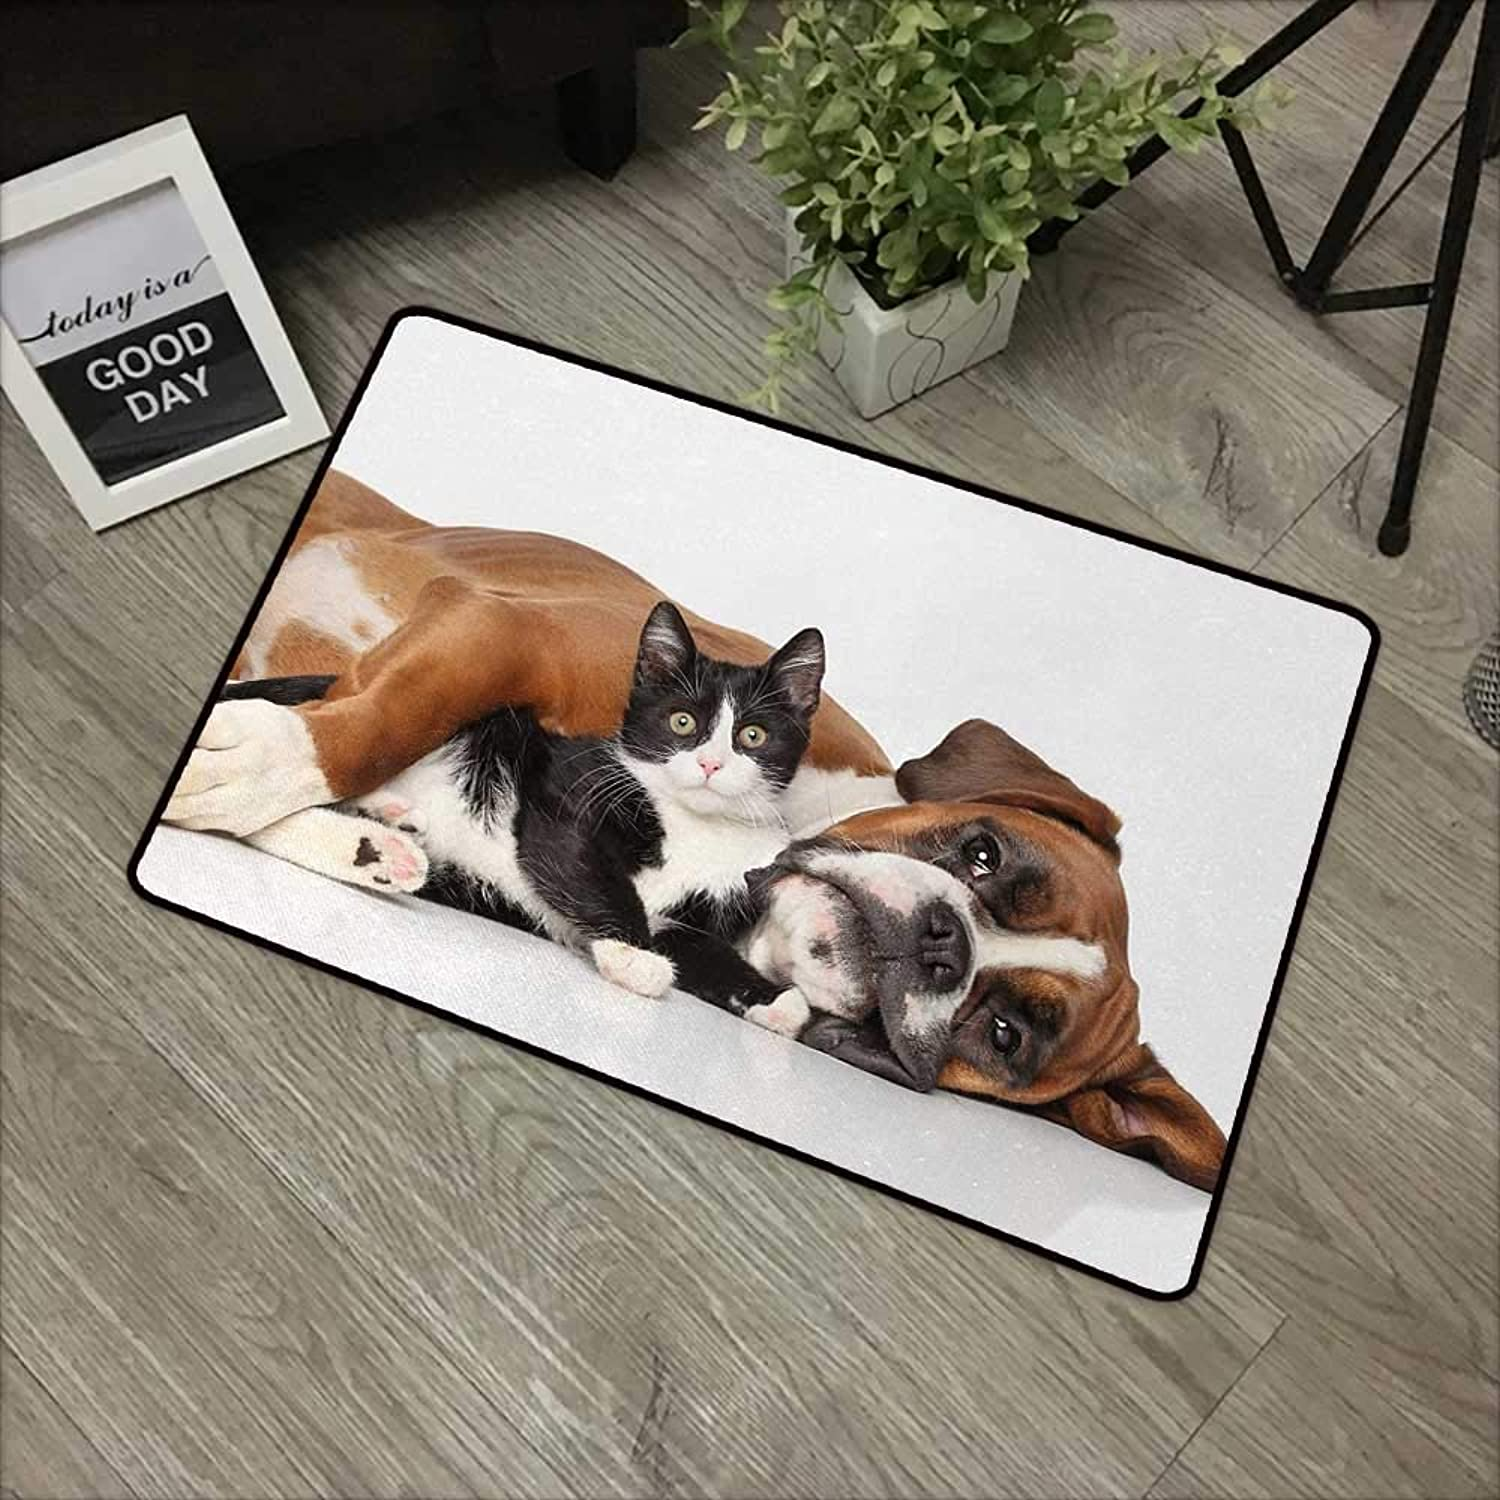 Interior Door mat W35 x L59 INCH Funny,Cat and Dog Cuddling Lying on Floor Friendship Theme Cute Animals Togetherness,Brown Black White Non-Slip, with Non-Slip Backing,Non-Slip Door Mat Carpet